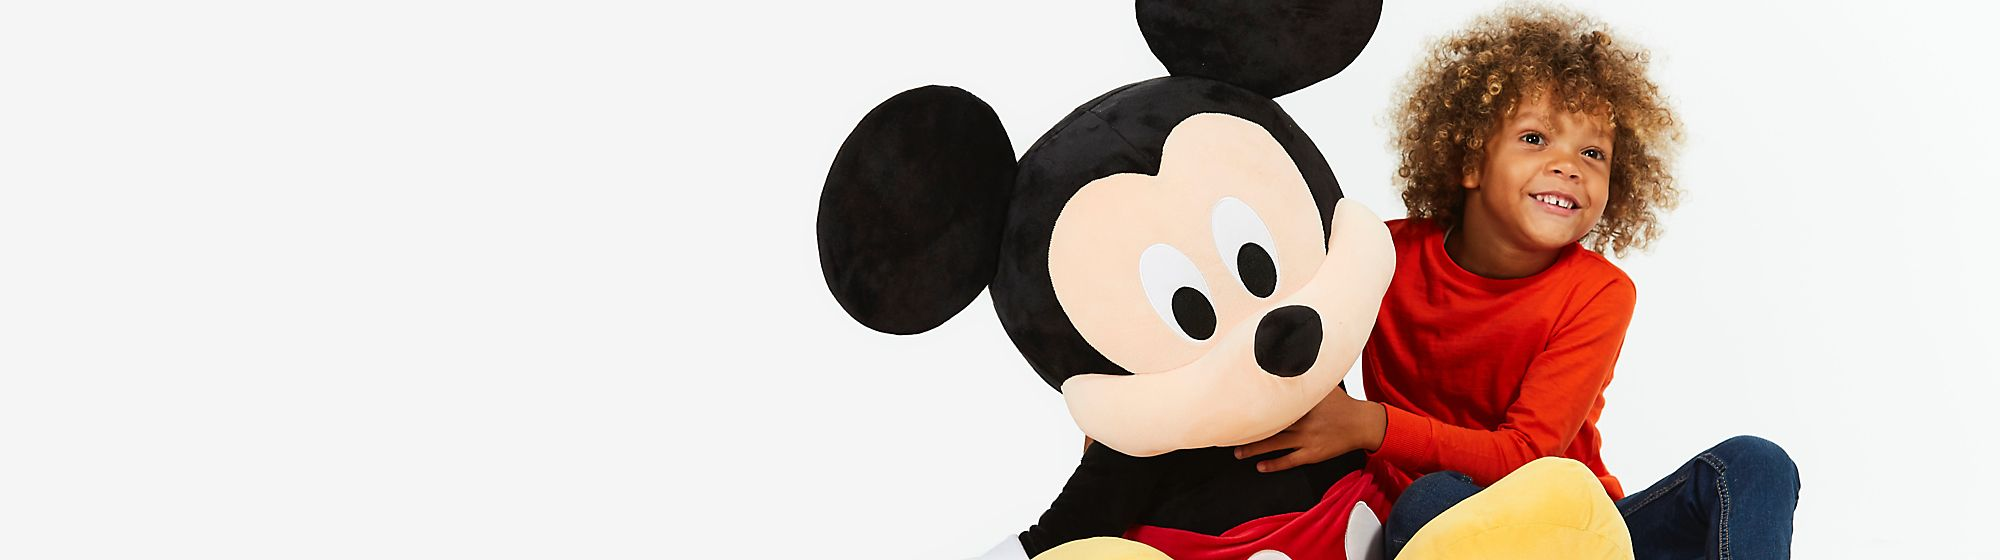 Disney Disney gifts, products, movies and more to excite and delight every fan